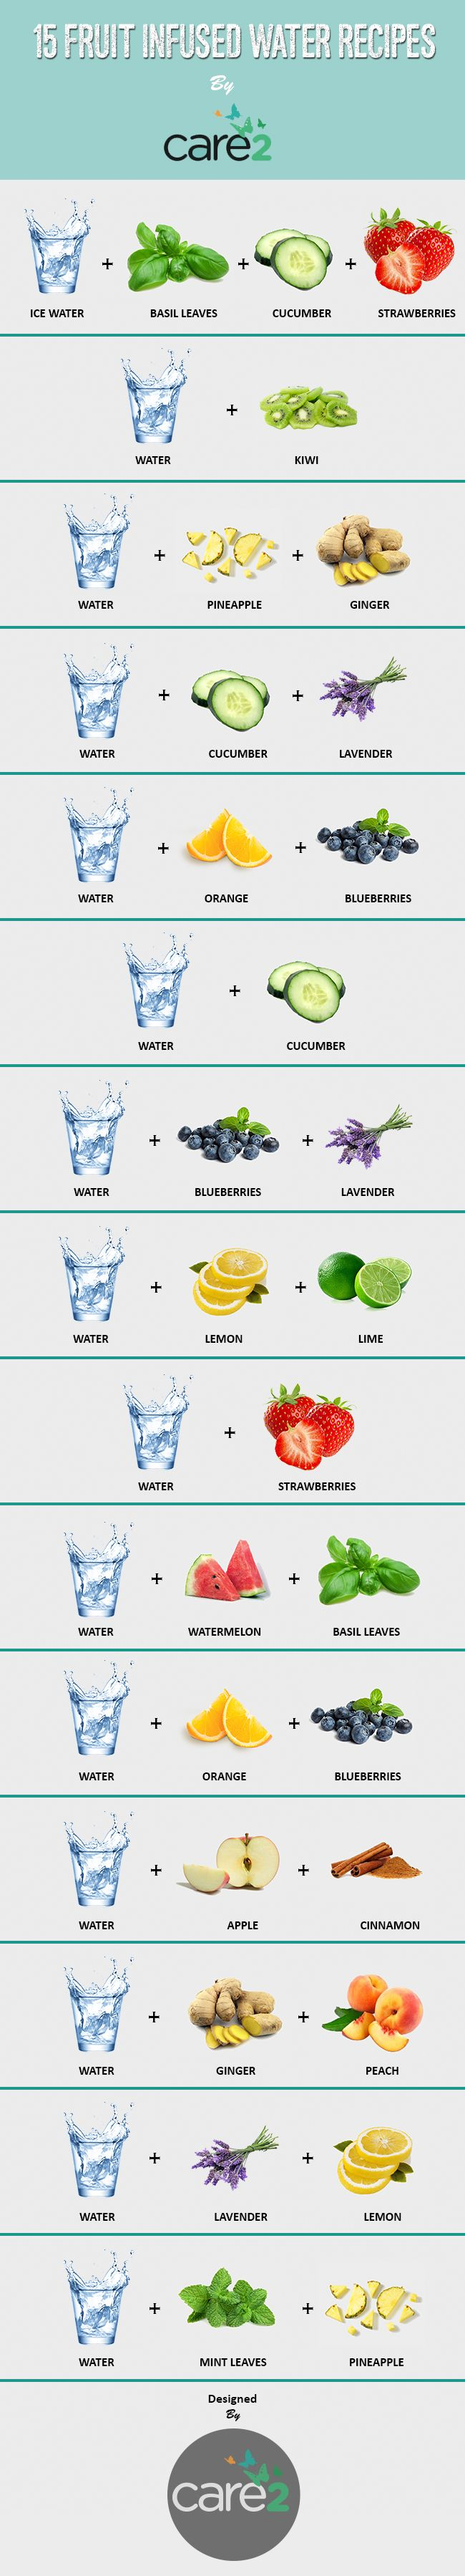 dingo.care2.com pictures greenliving uploads 2017 06 15-fruit-infused-water-recipes.jpg